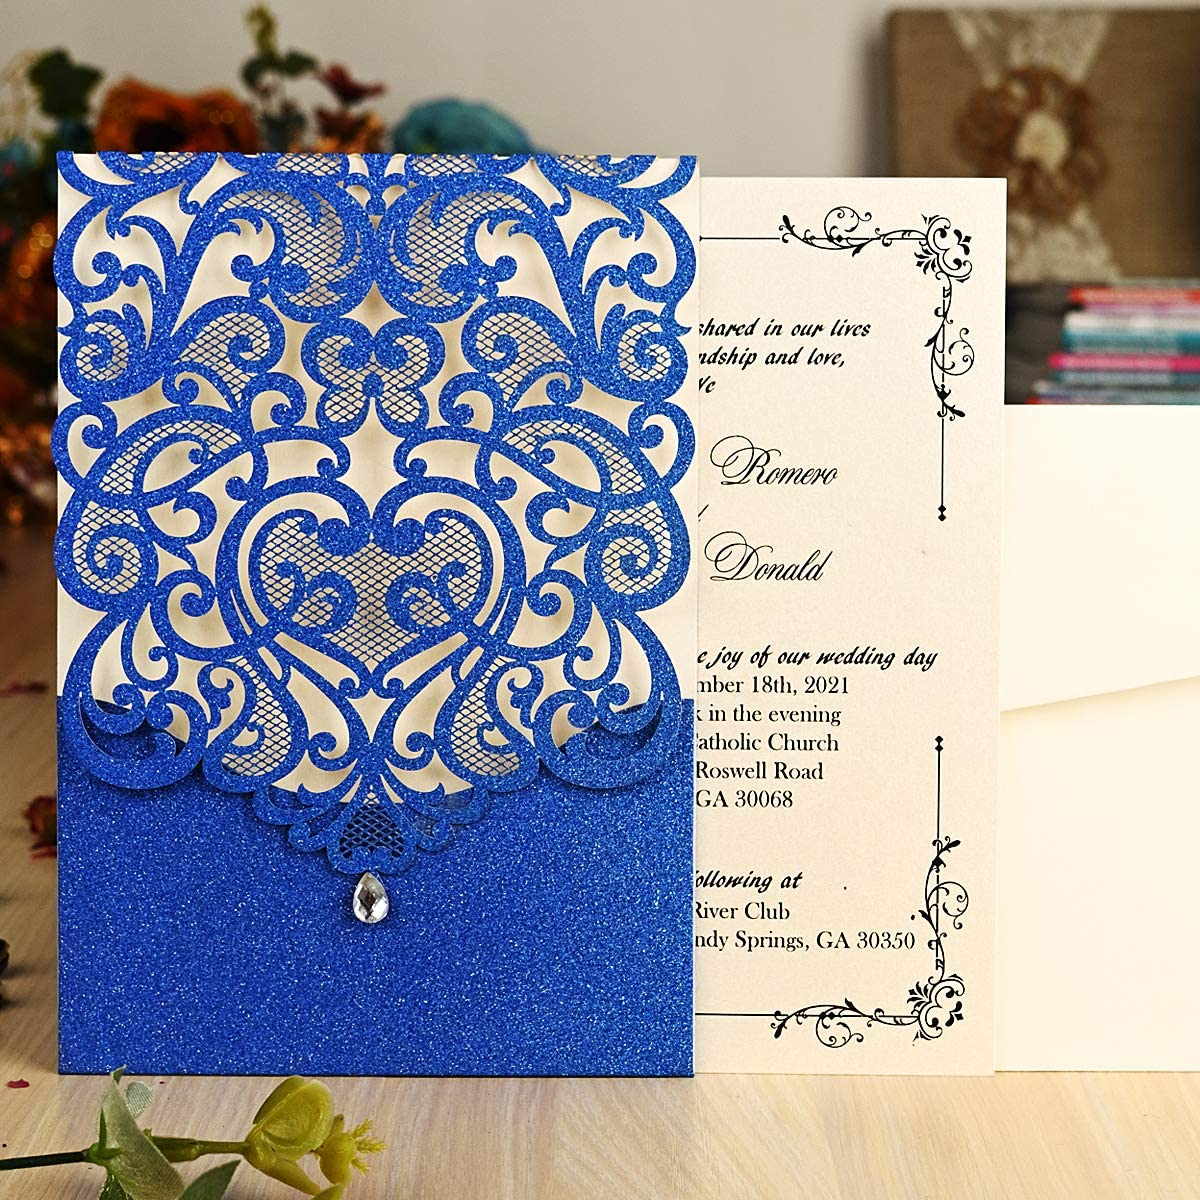 Amazon.com: Hosmsua 20x Wedding Invitations Cards Laser Cut Hollow Rose  with Rhinestone for Bridal Shower Engagement Birthday Graduation Invite (Royal  Blue Glitter): Health & Personal Care